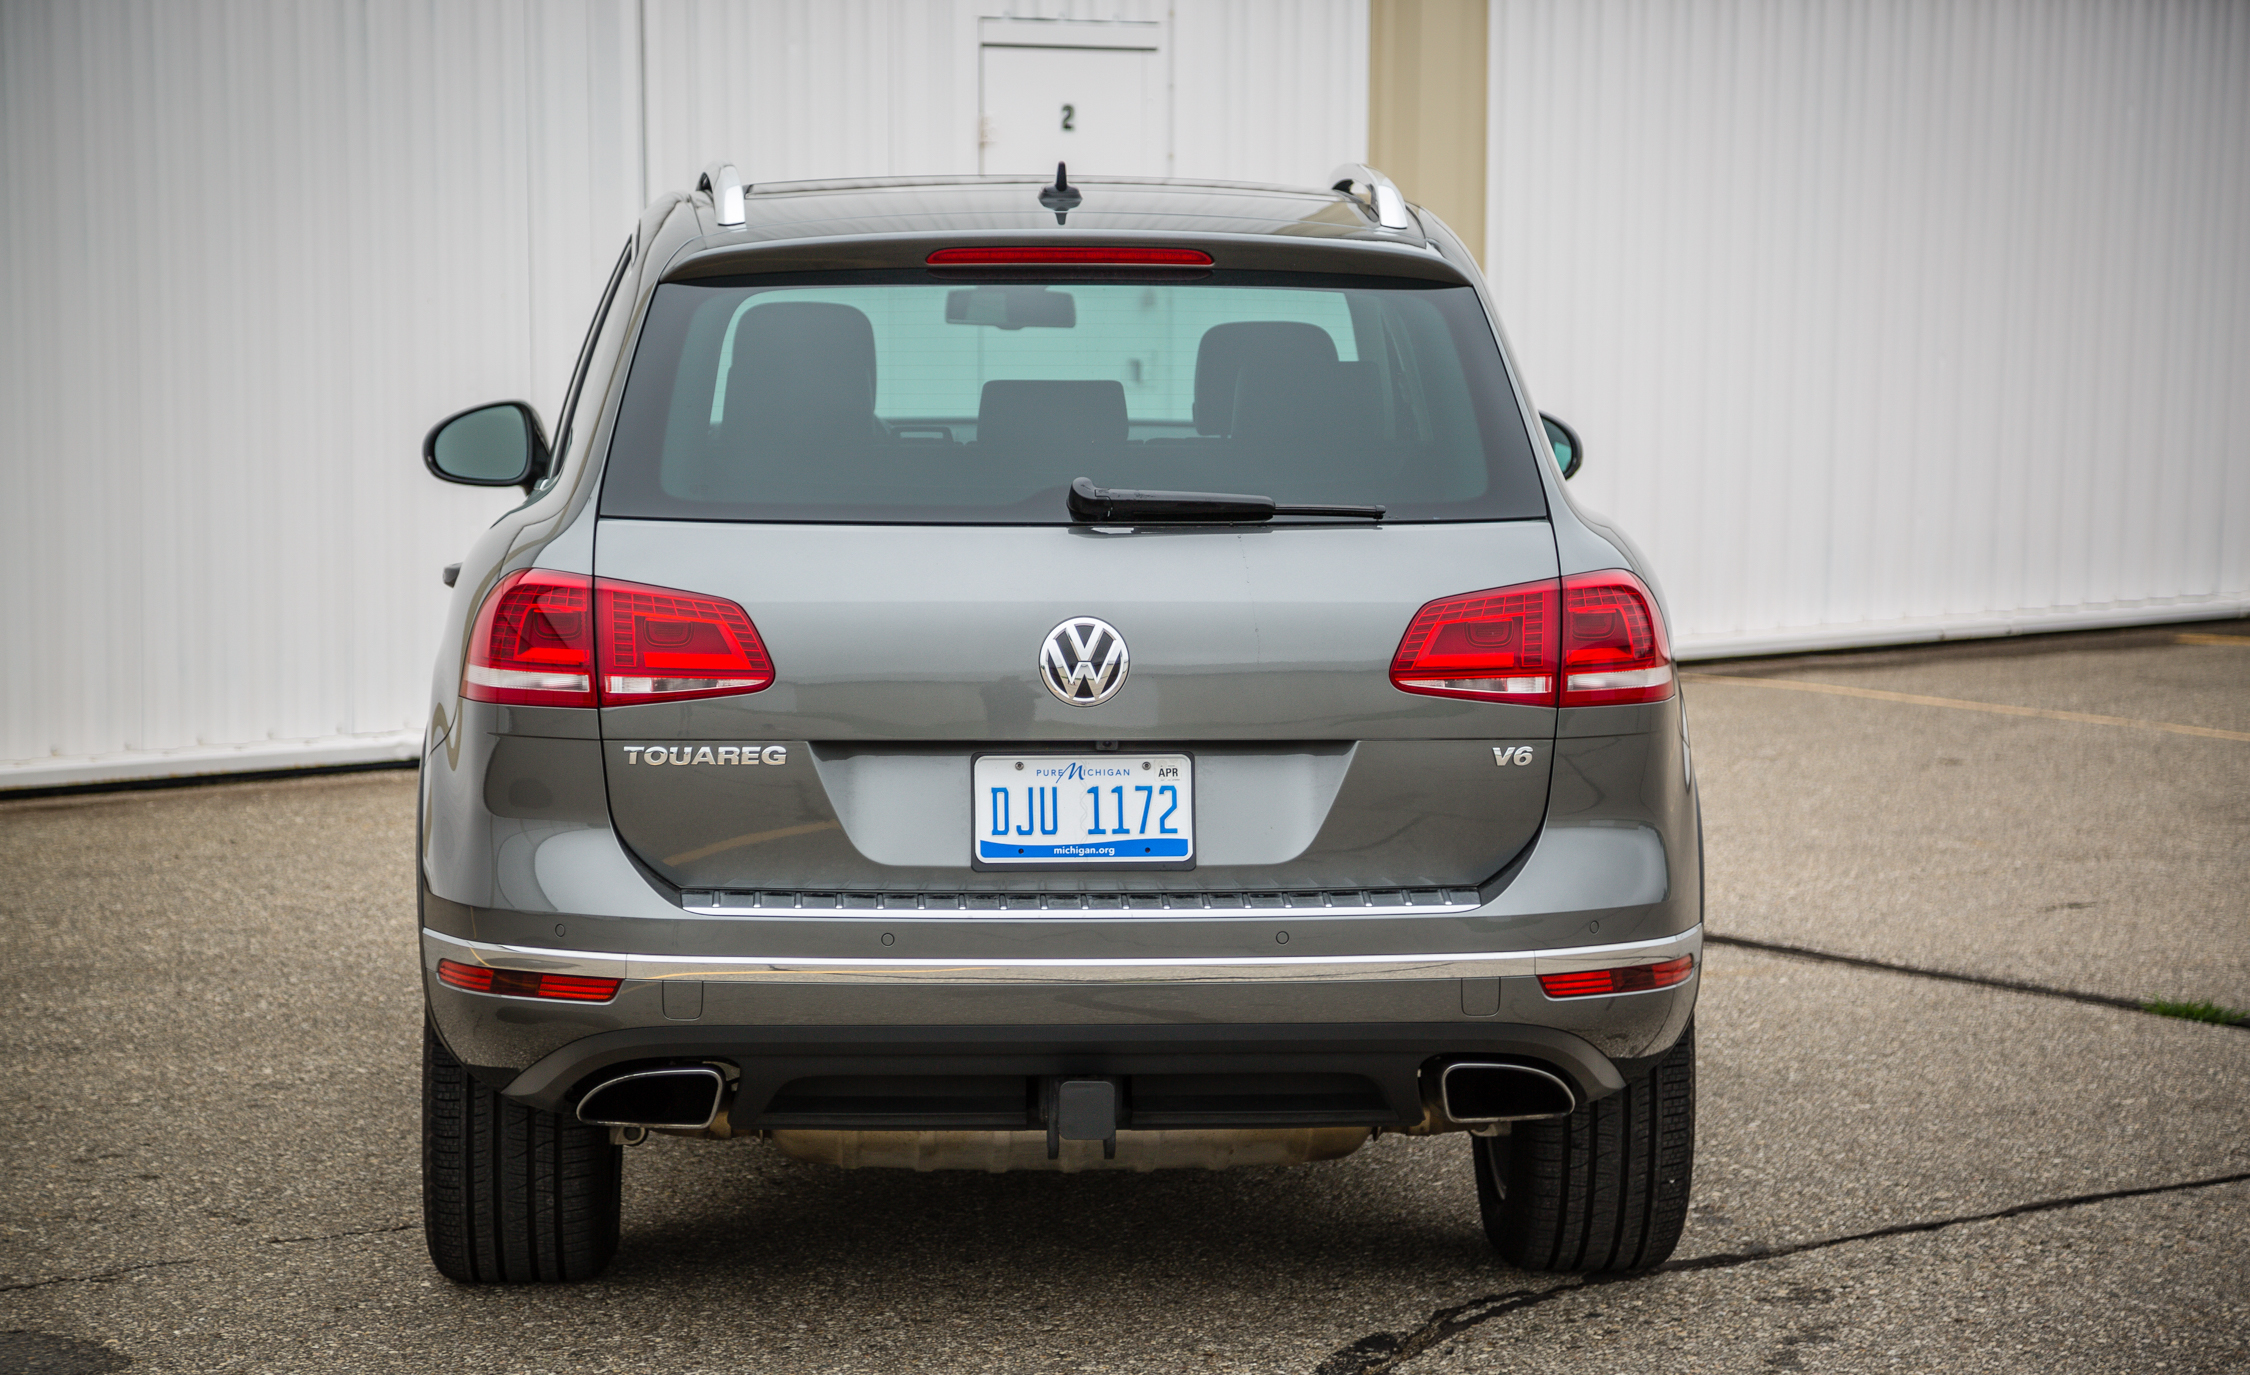 2016 Volkswagen Touareg Exterior Rear End (View 16 of 16)